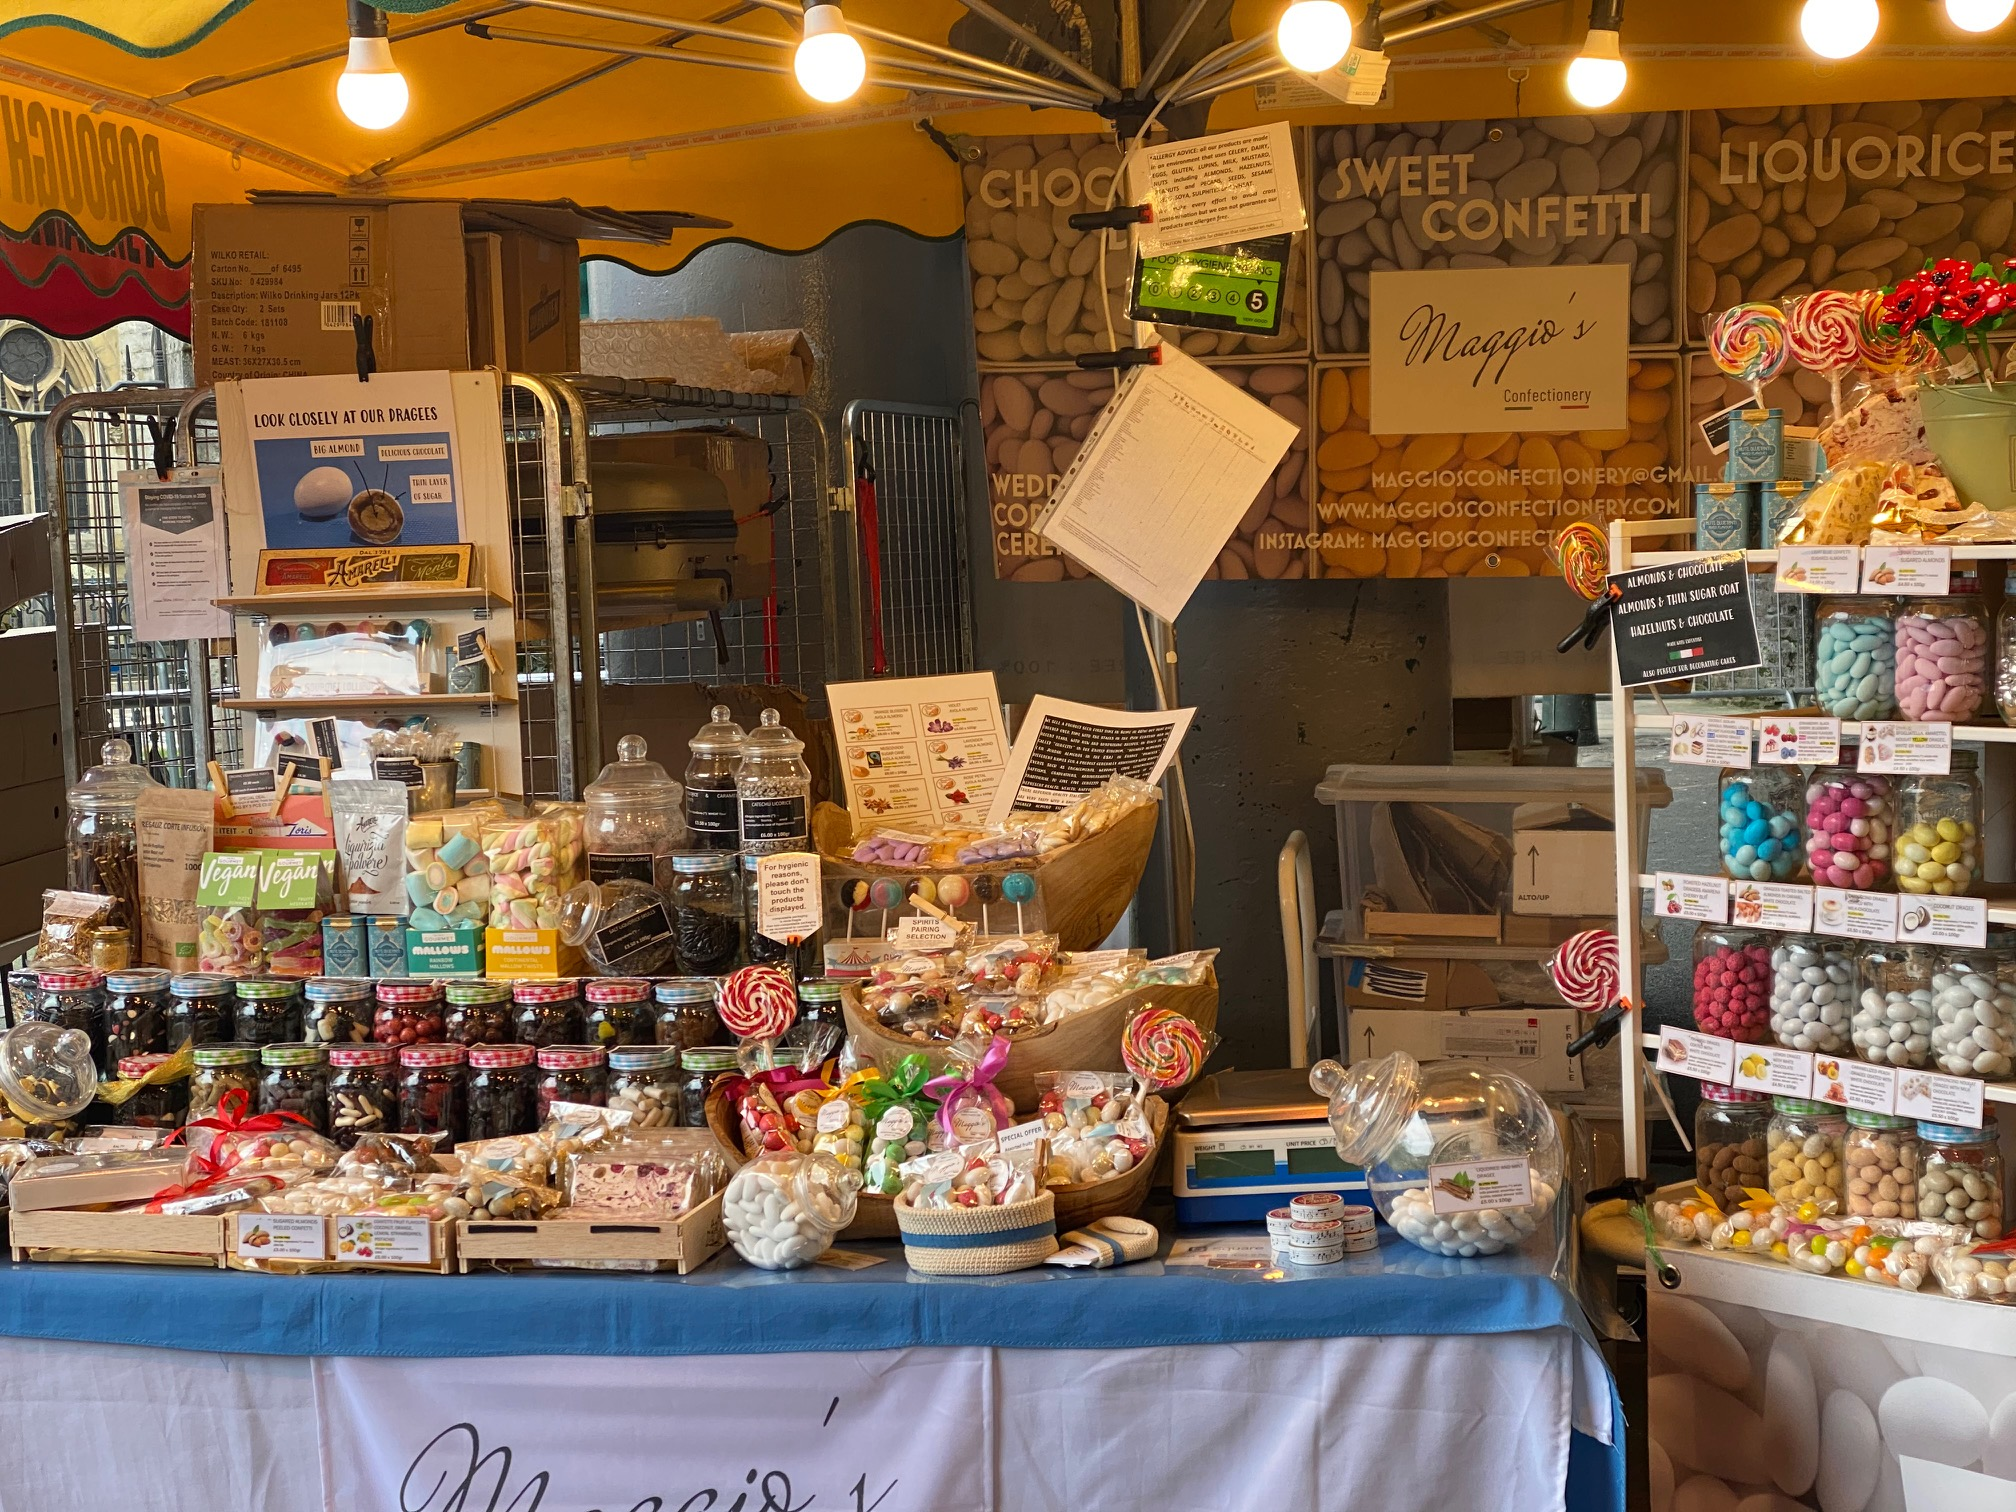 A confectionery stall in Borough Market